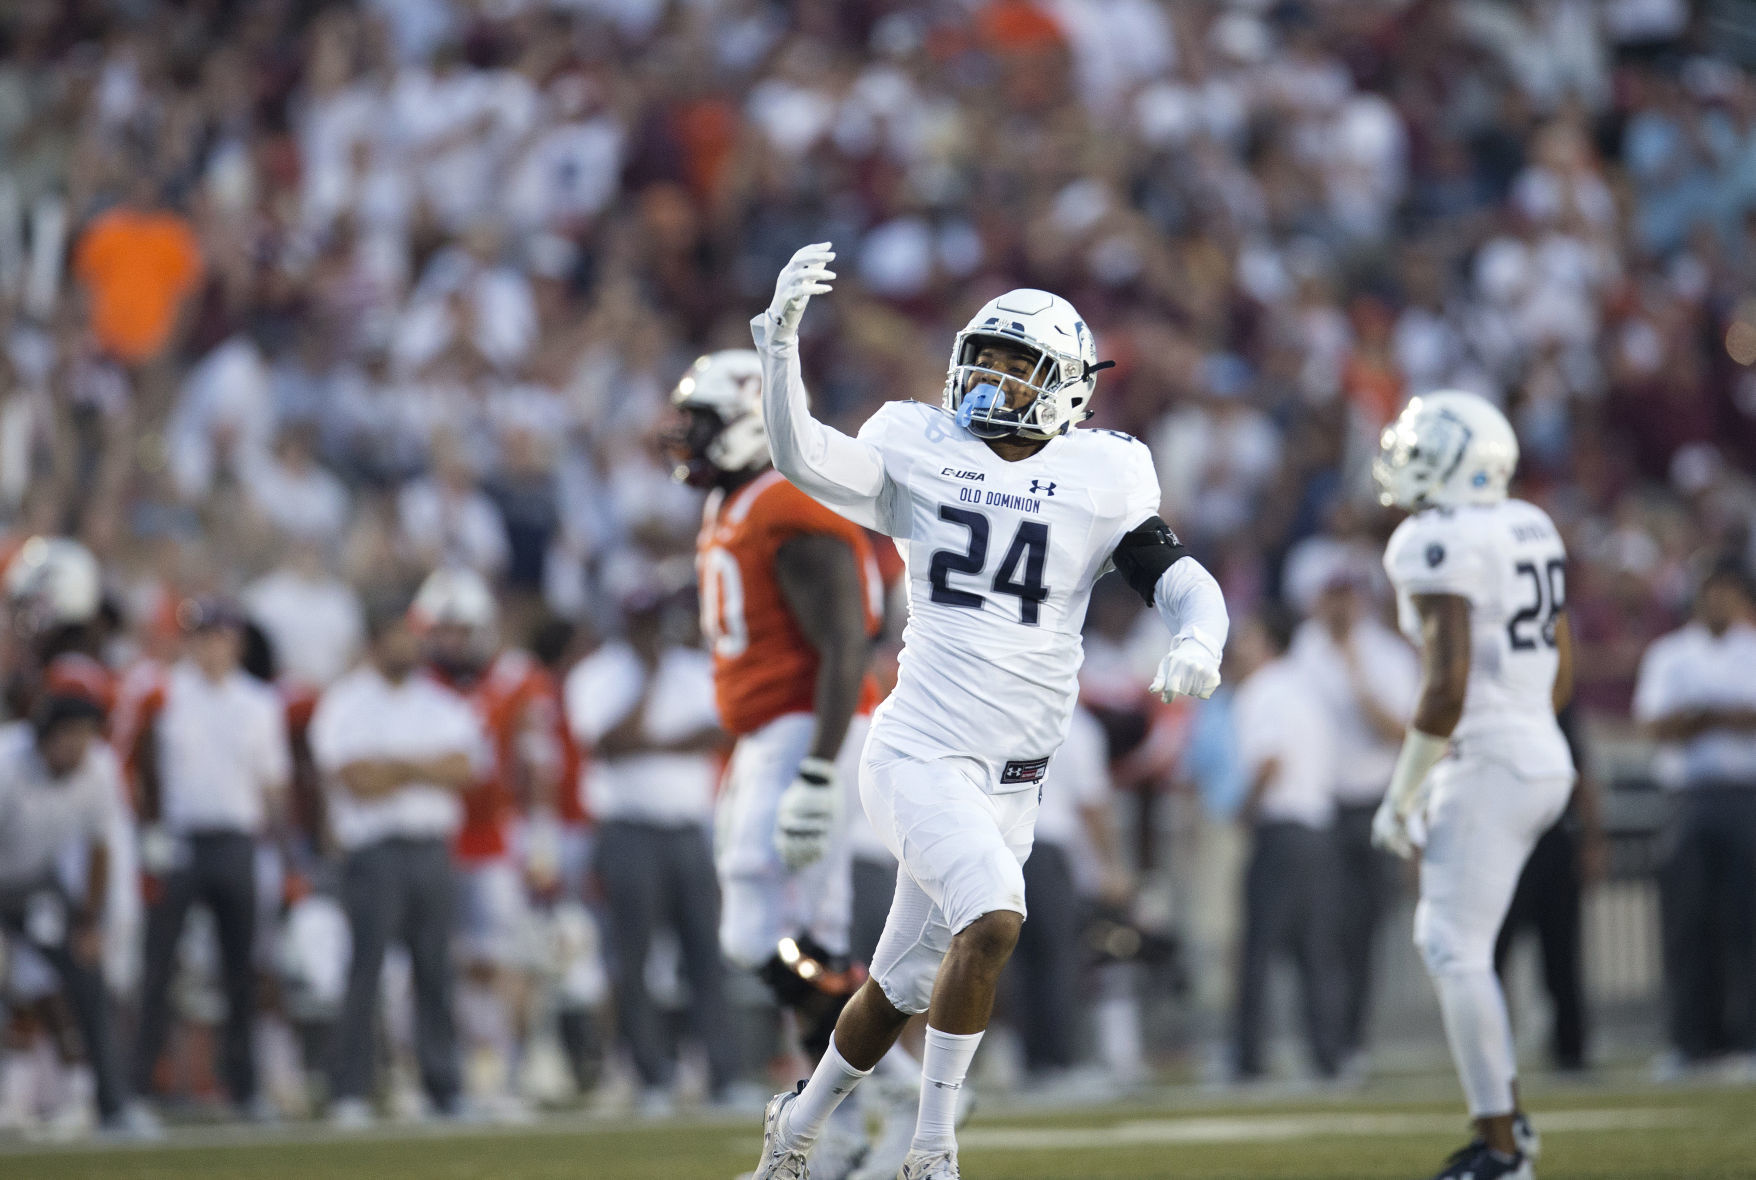 Can beating Virginia Tech spark a turnaround for Old